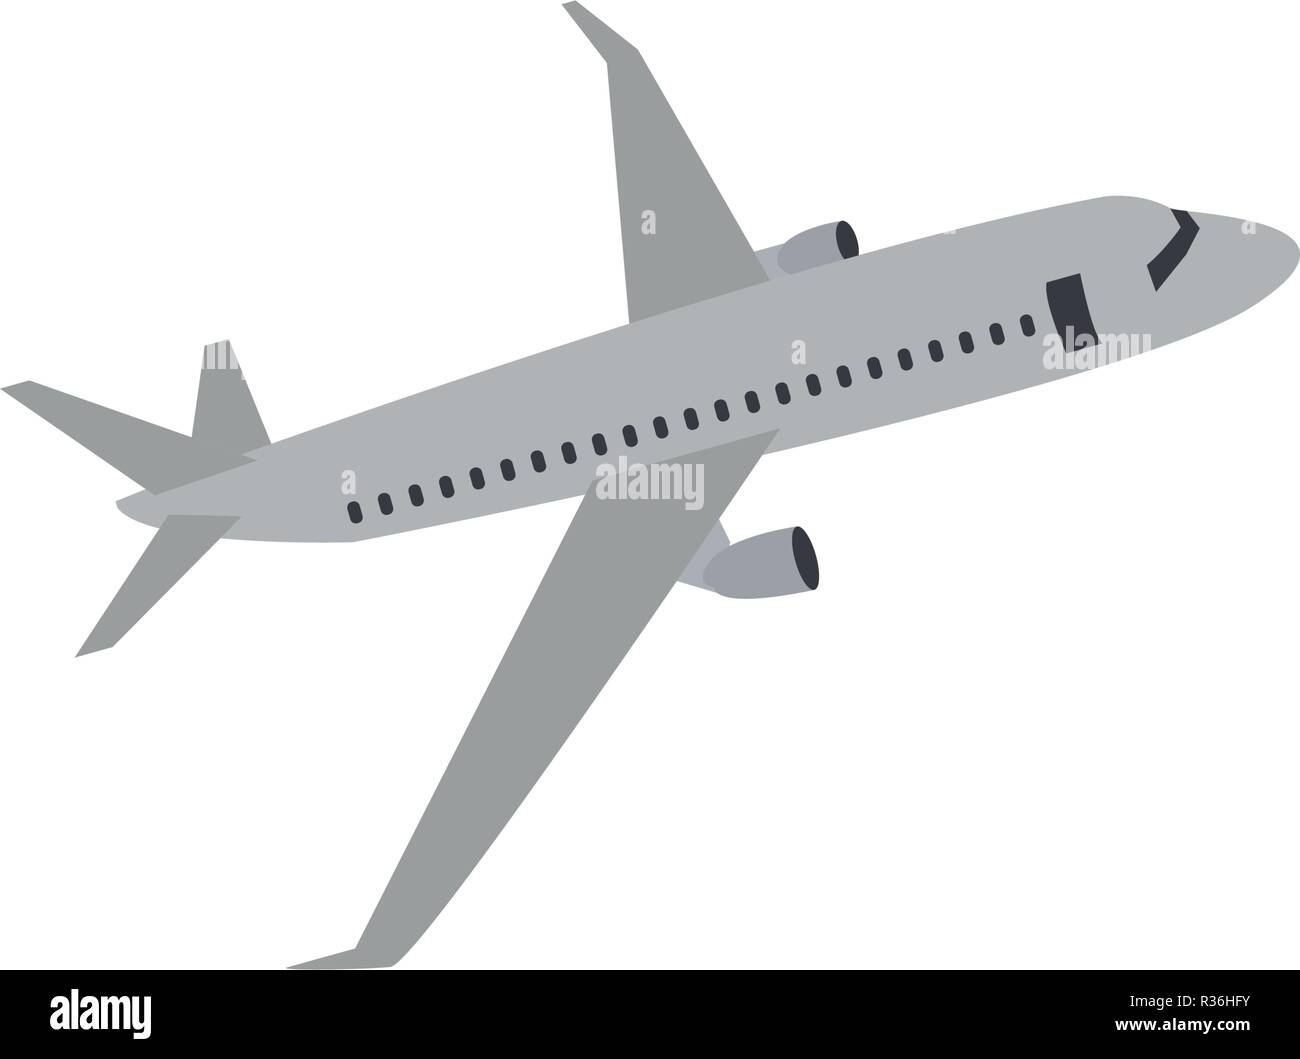 Aero plane graphic design template vector illustration - Stock Vector